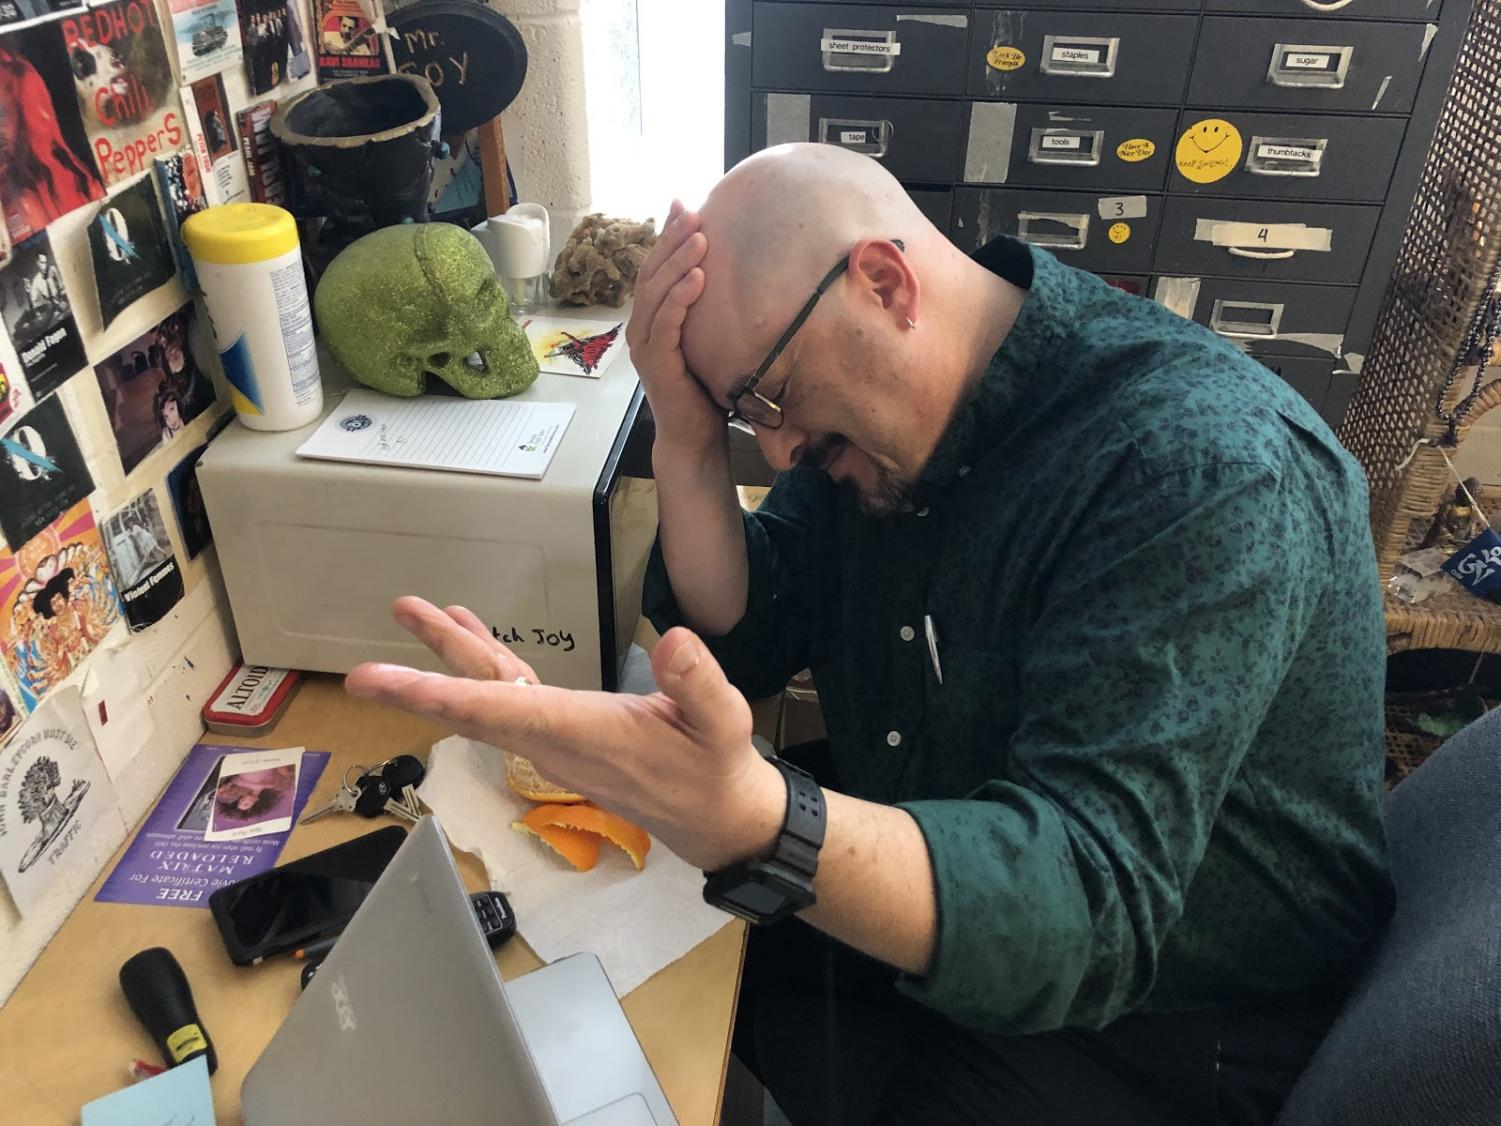 WJ teacher Mr. Joy shows his disappointment in other teachers amidst the Juul controversy. The epidemic started with student but has spread all over the school. Photo by Matt Garfinkel.